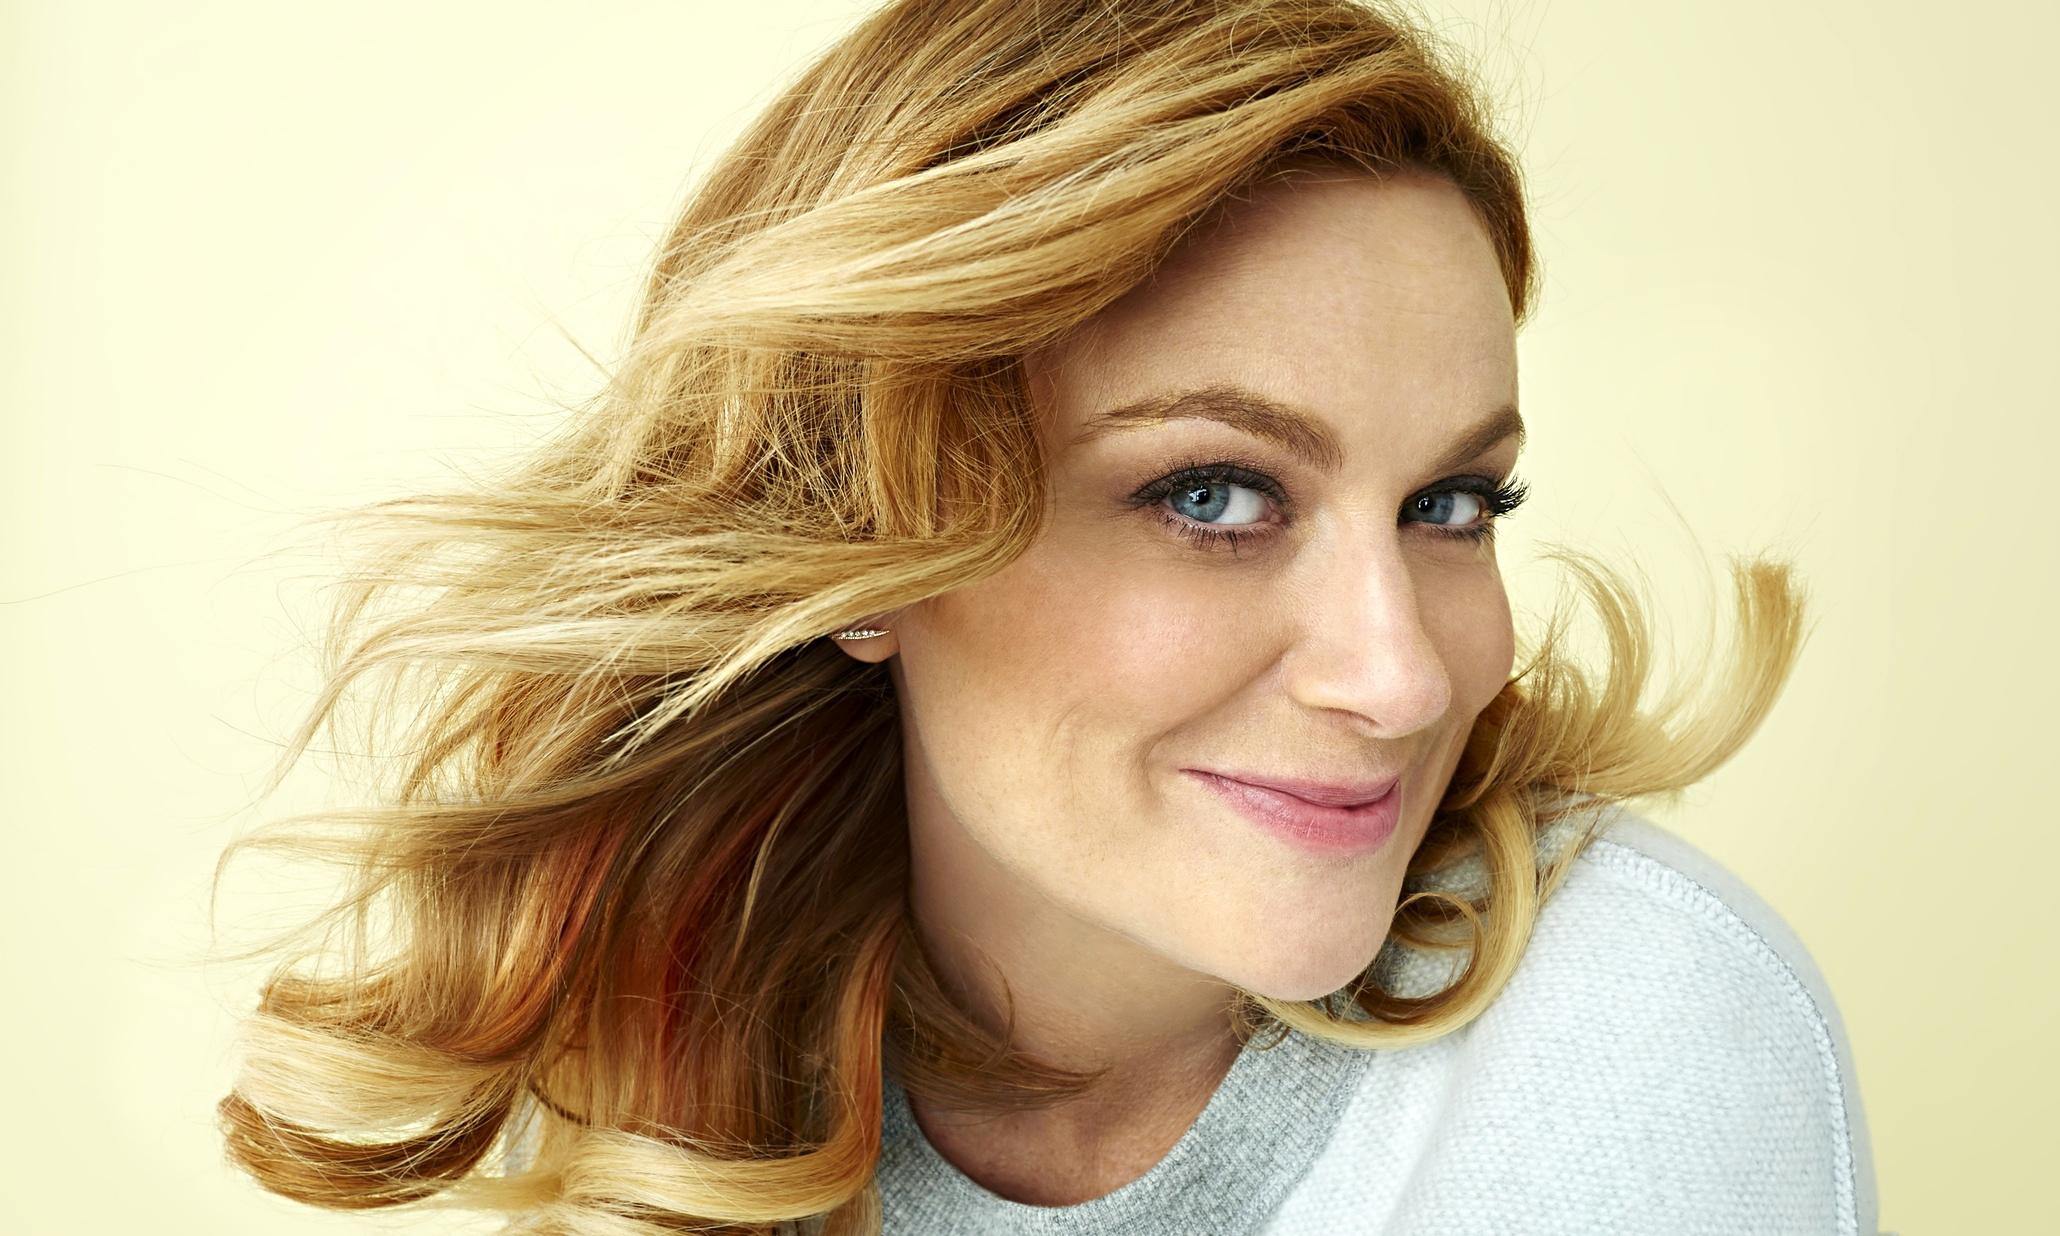 Amy poehler is totally awesome